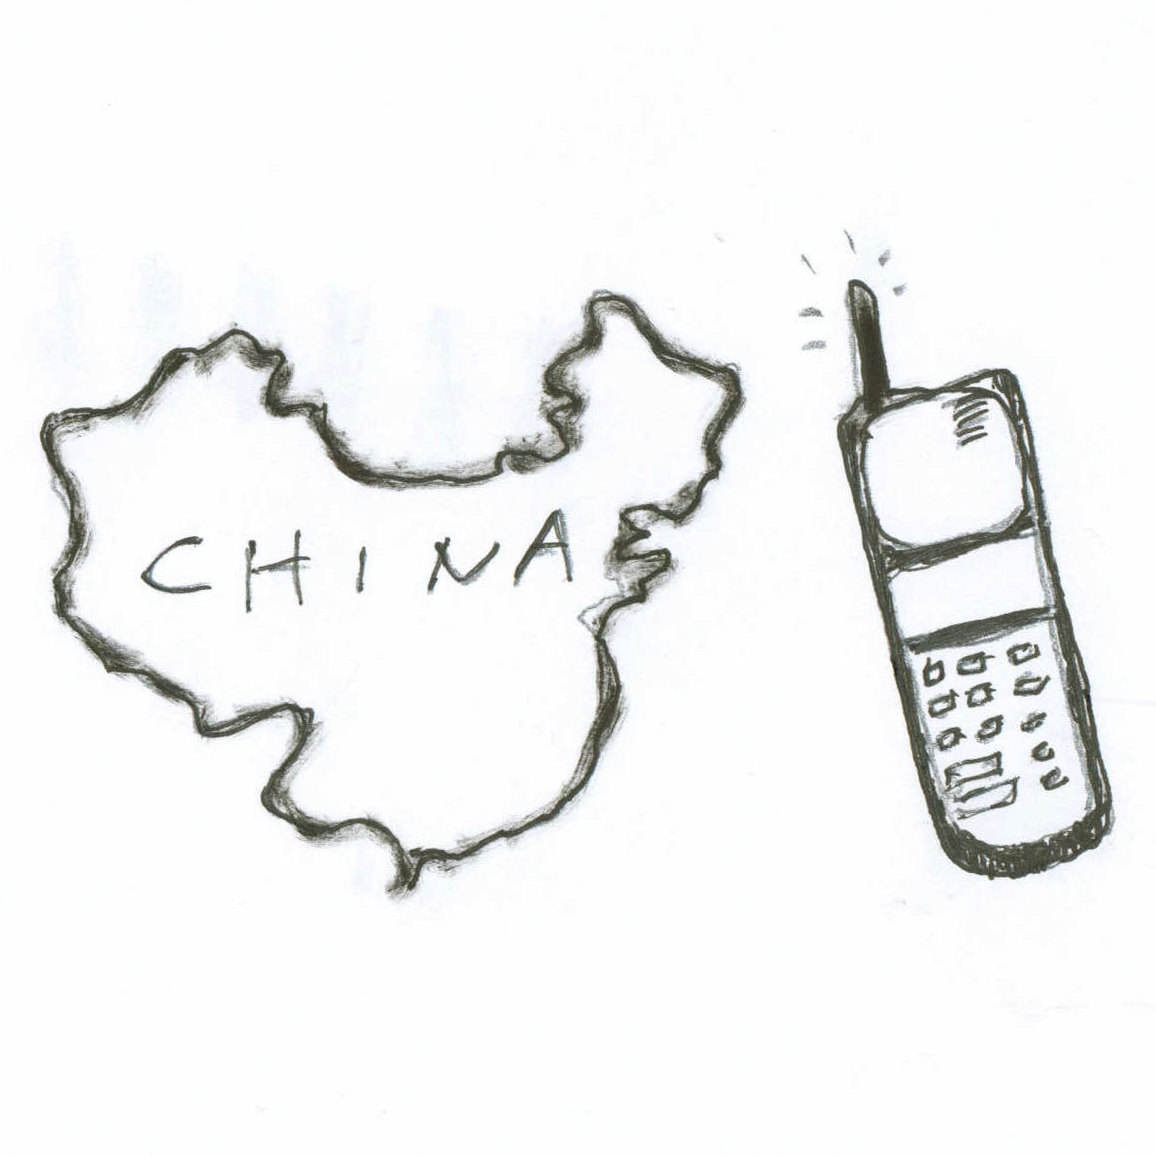 China and cellphone.